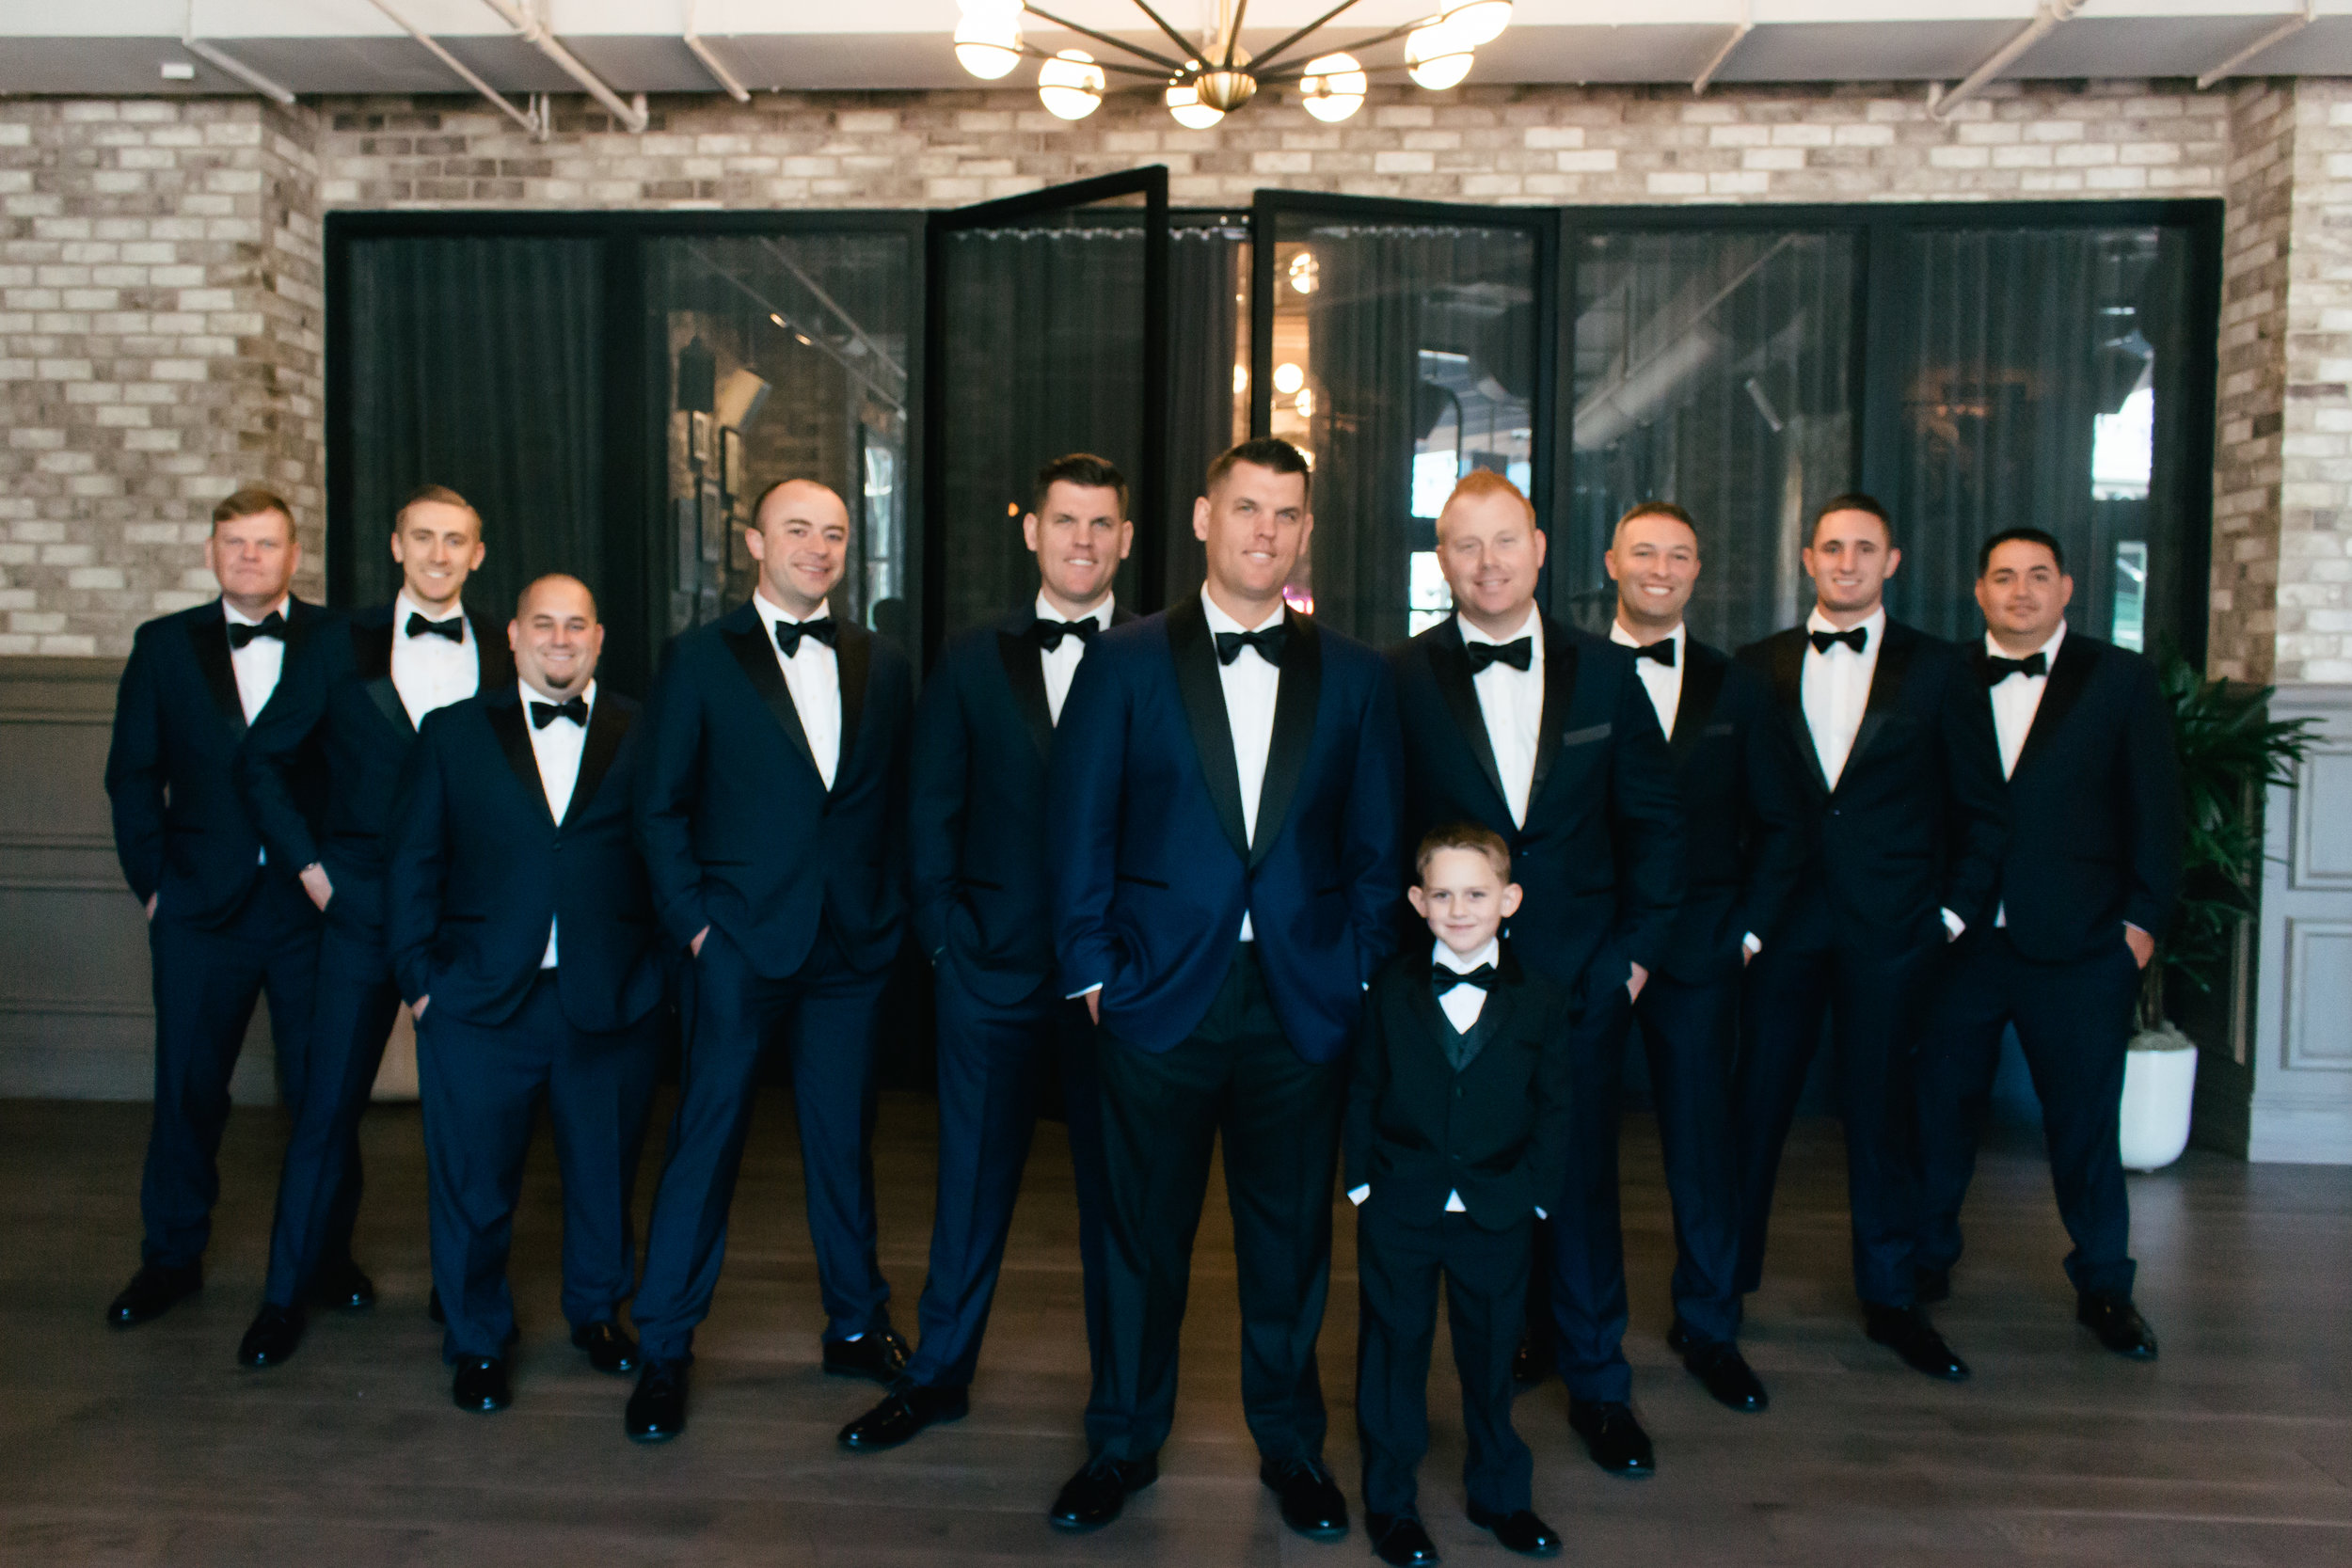 Navy and Black Groomsmen Tuxedos Chicago Wedding Lindsey Taylor Photography